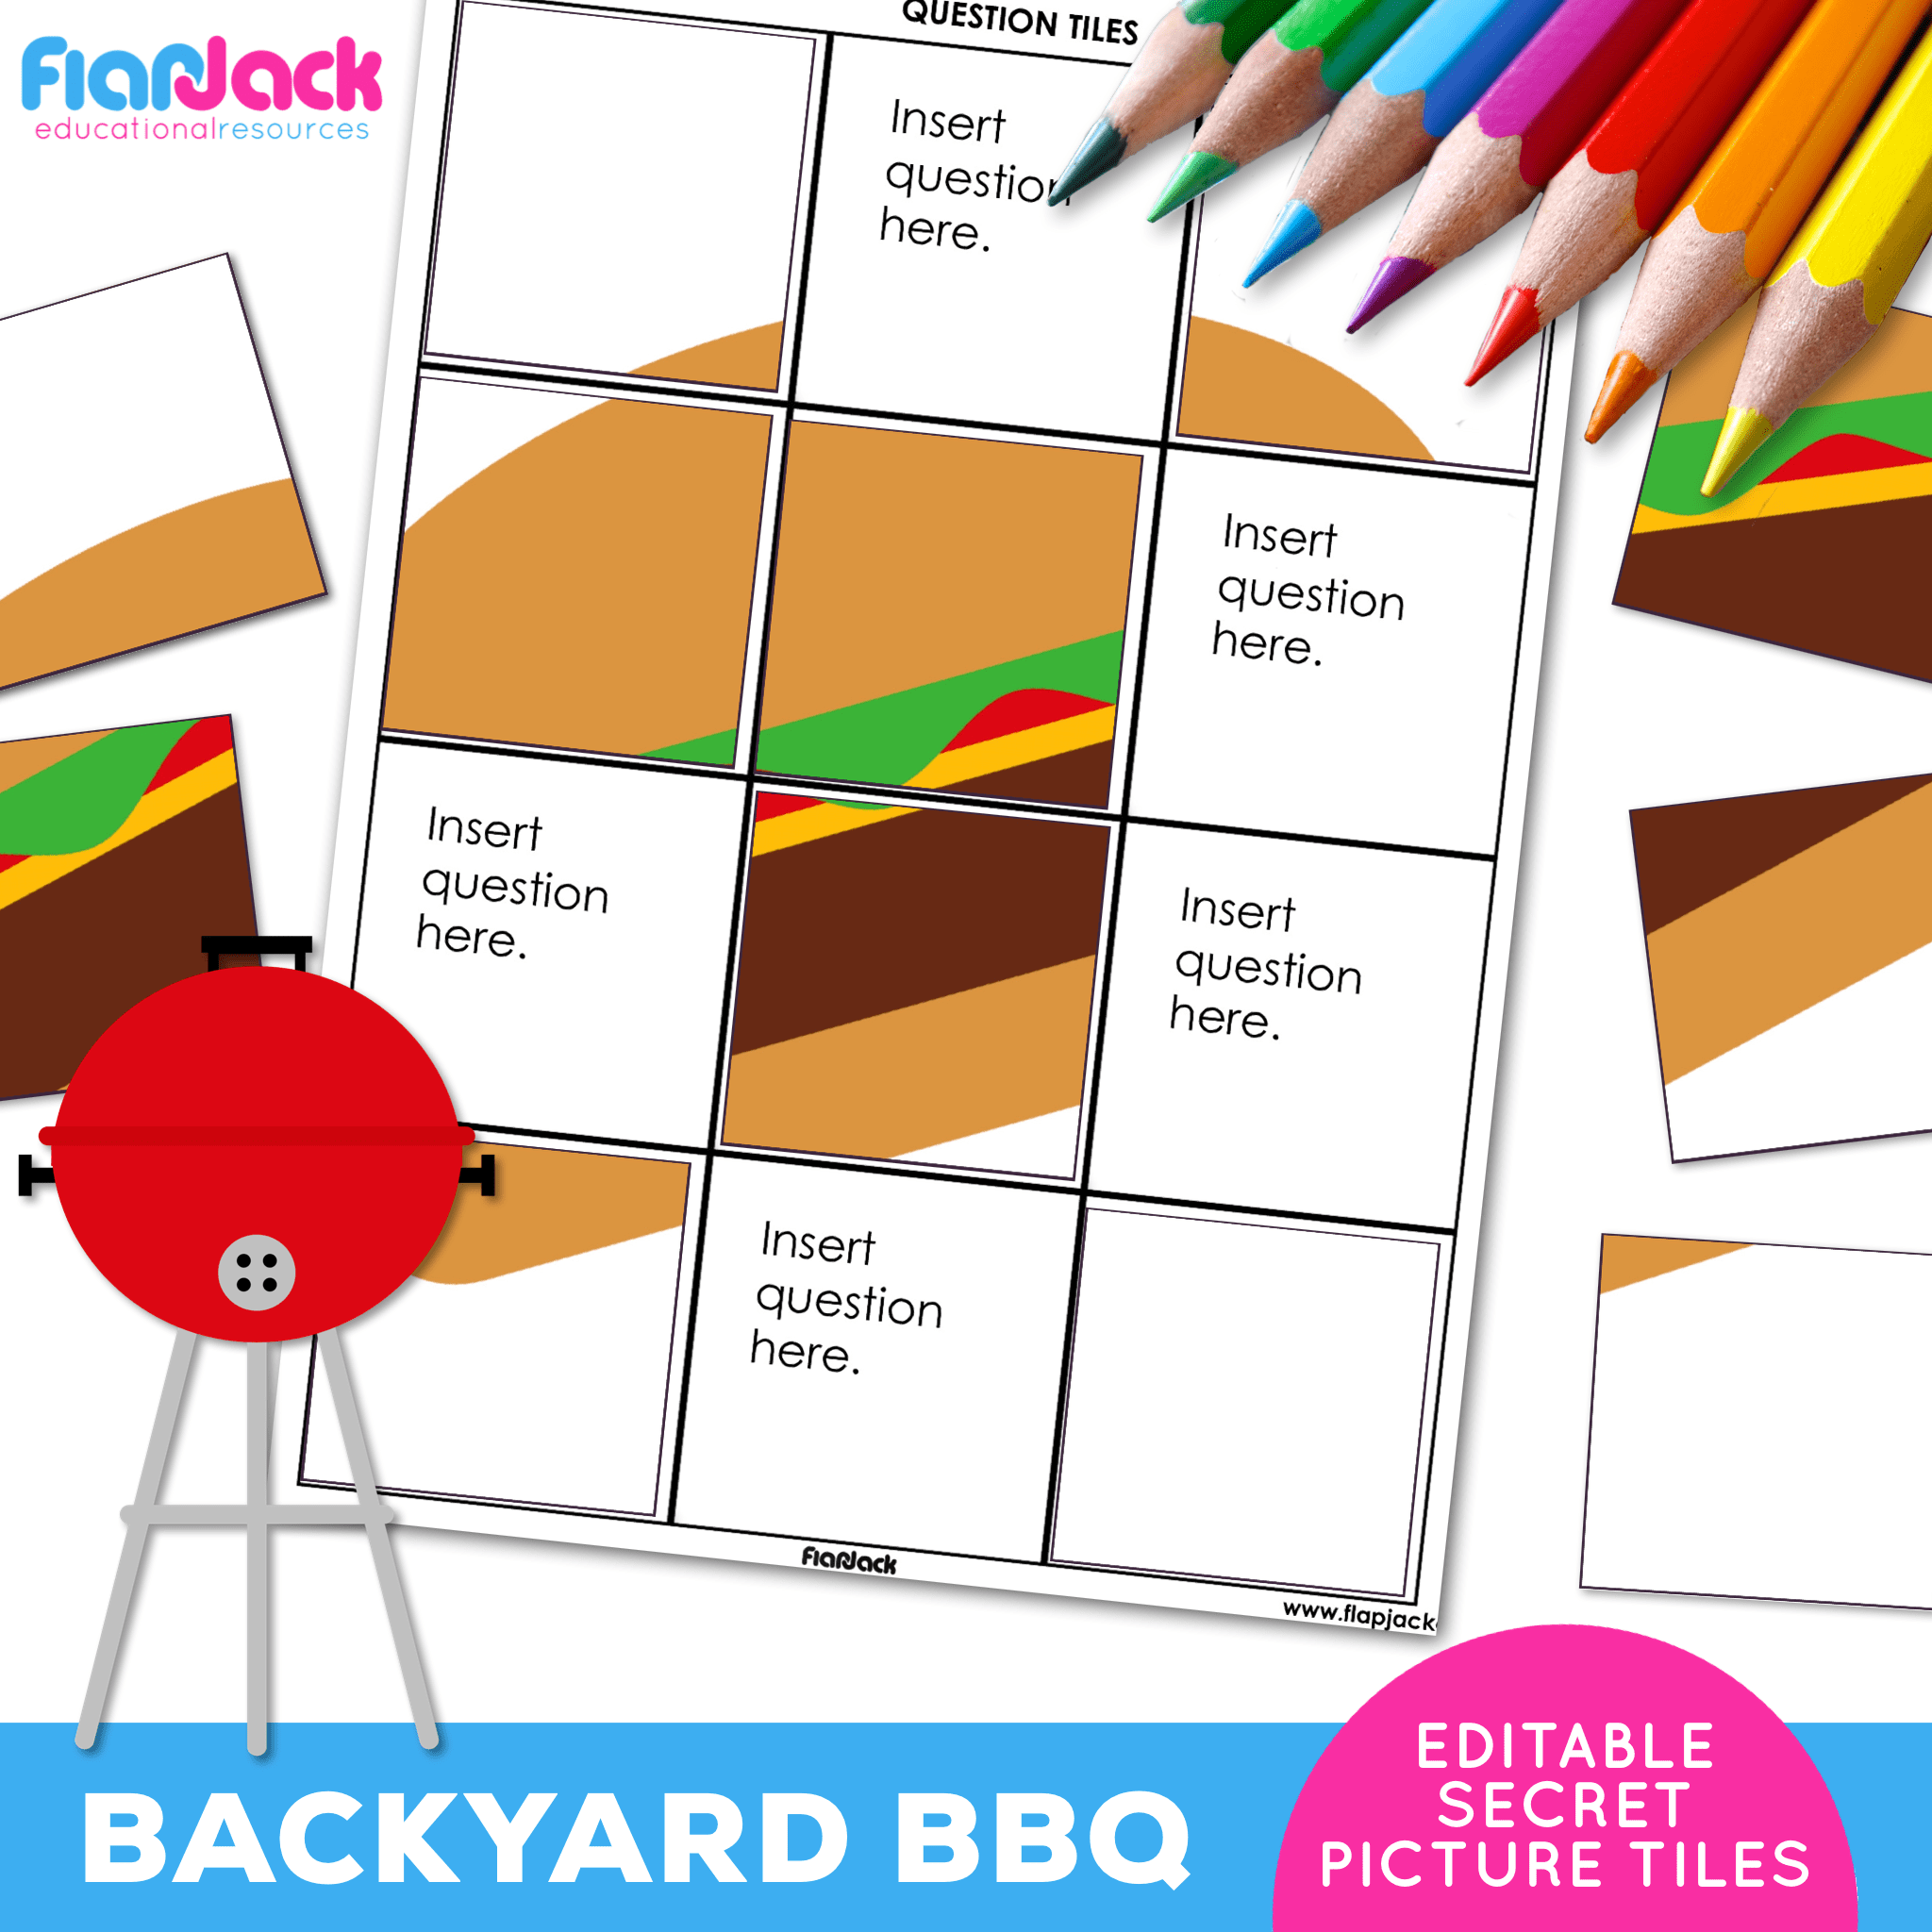 Printable EDITABLE Worksheets | Backyard BBQ